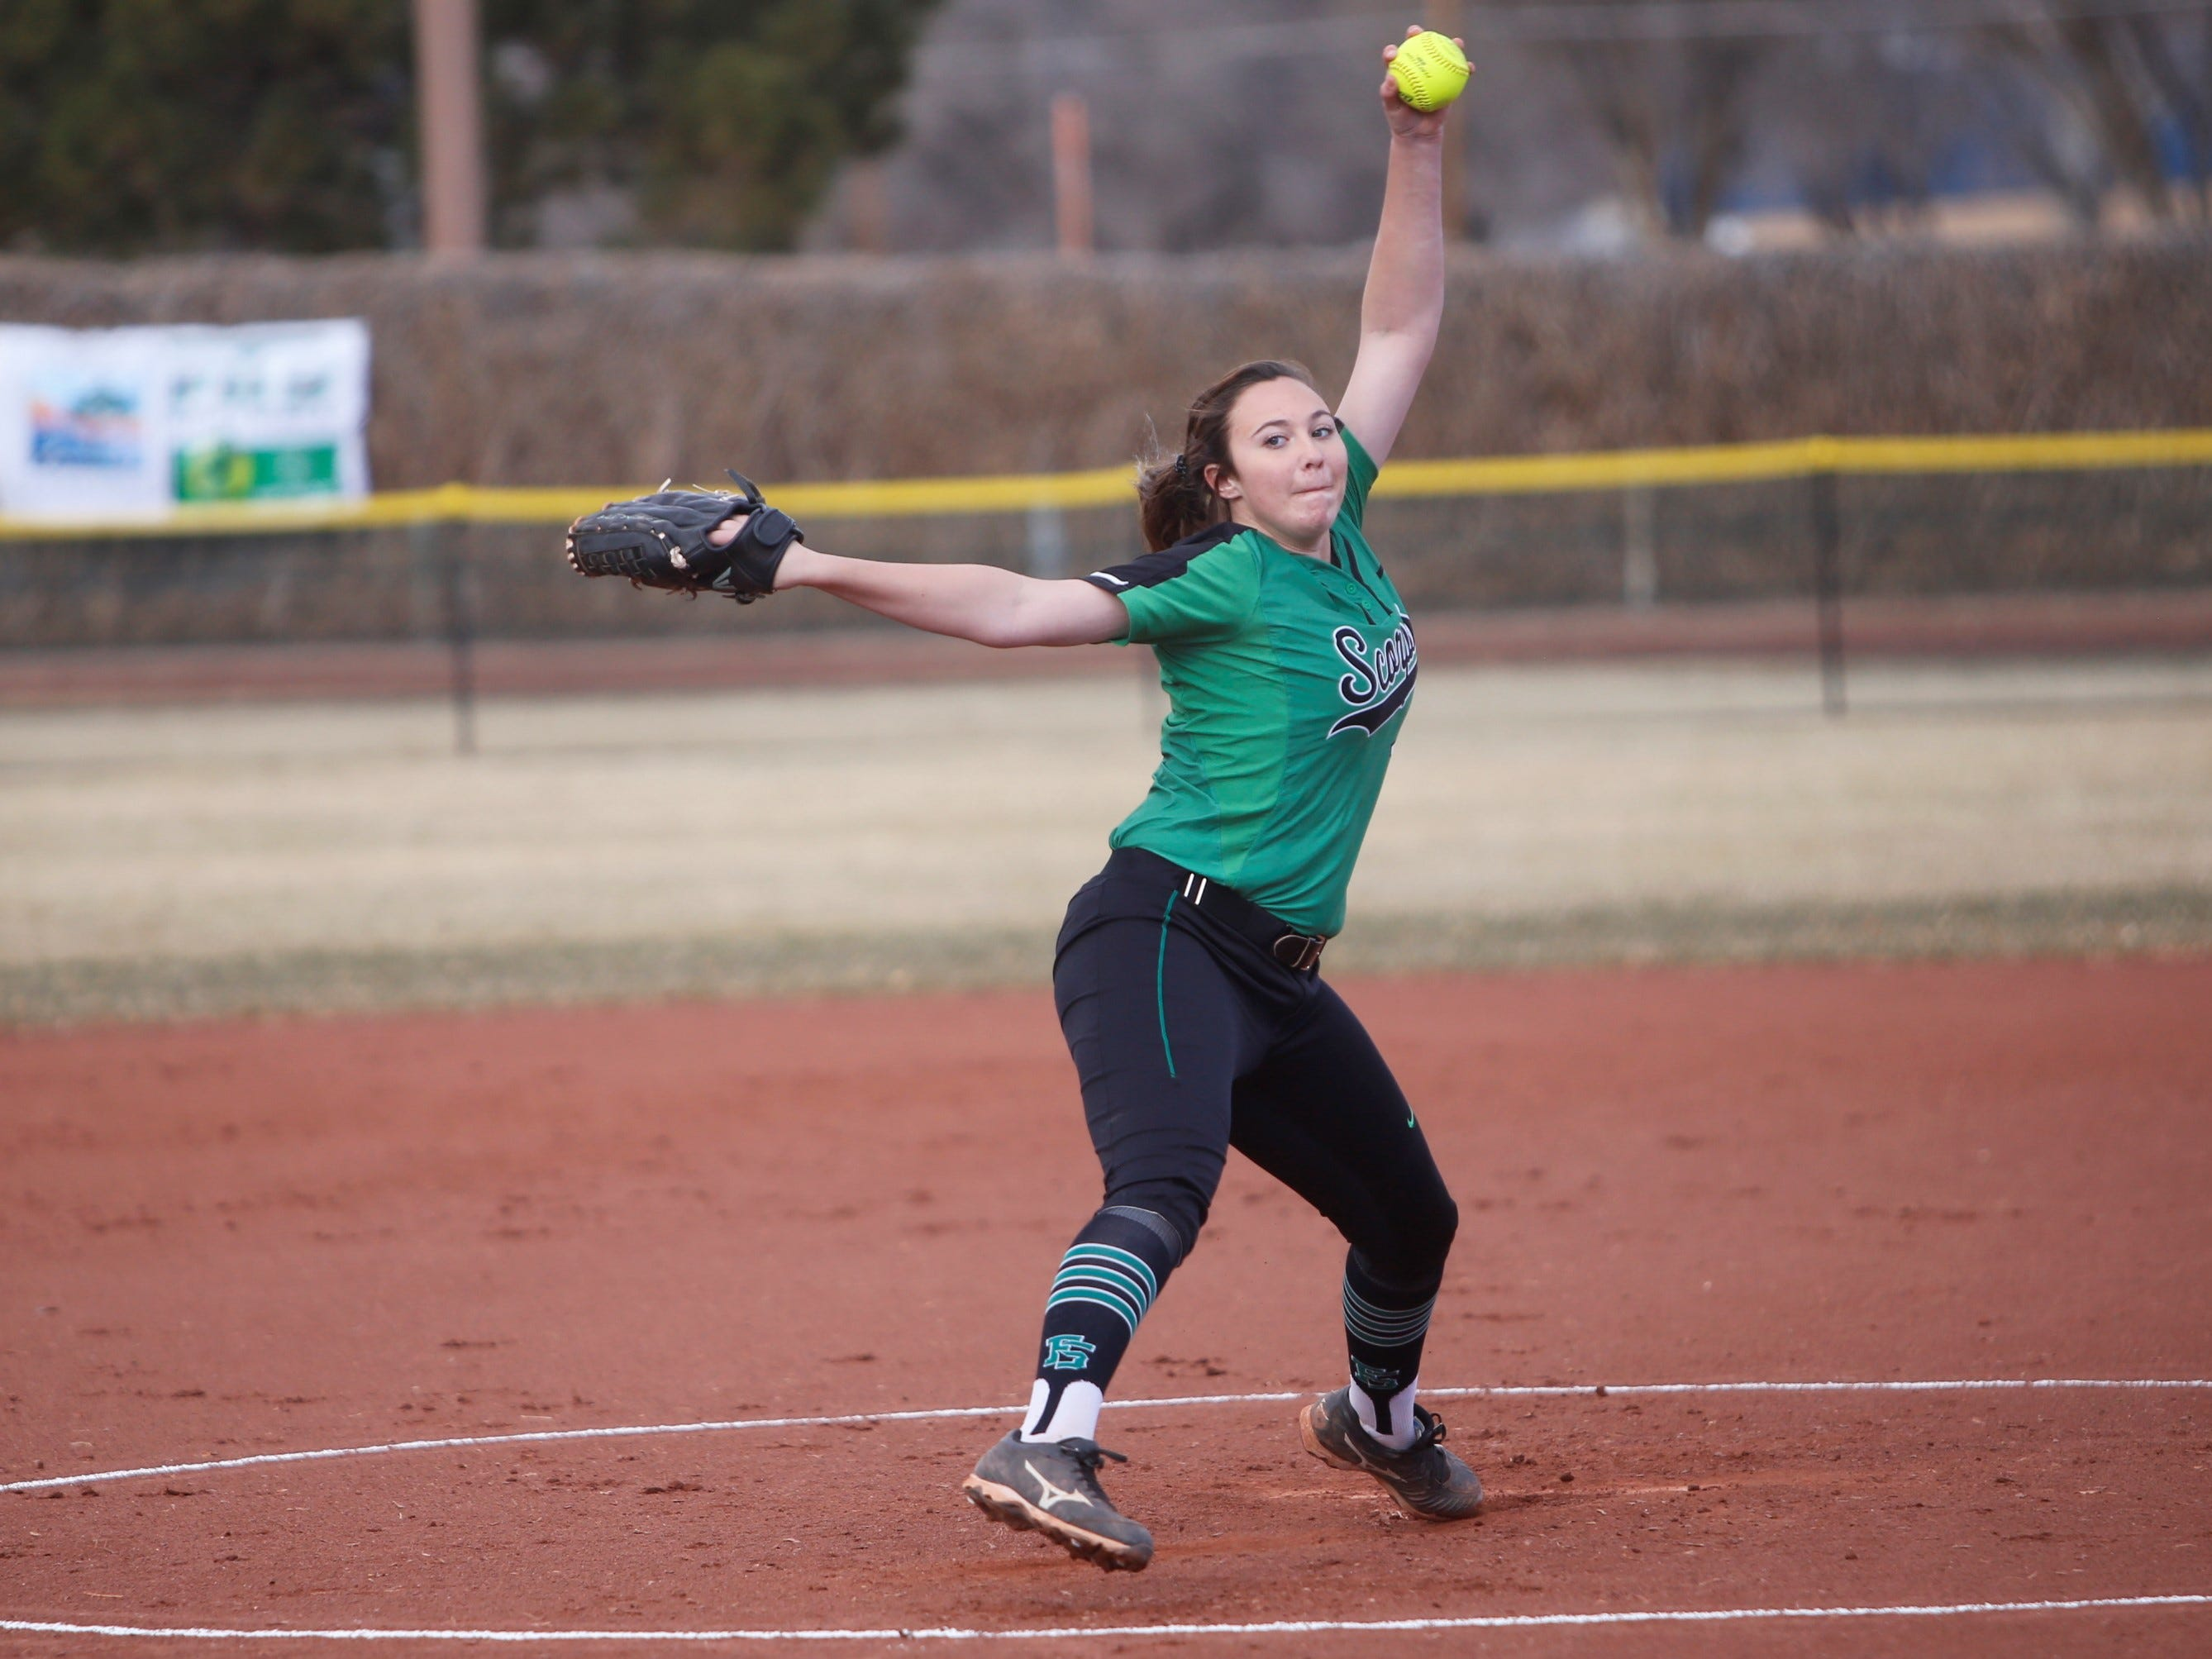 Farmington's Nicole Brimhall throws a pitch against Kirtland Central during Tuesday's game at Ricketts Softball Complex in Farmington.